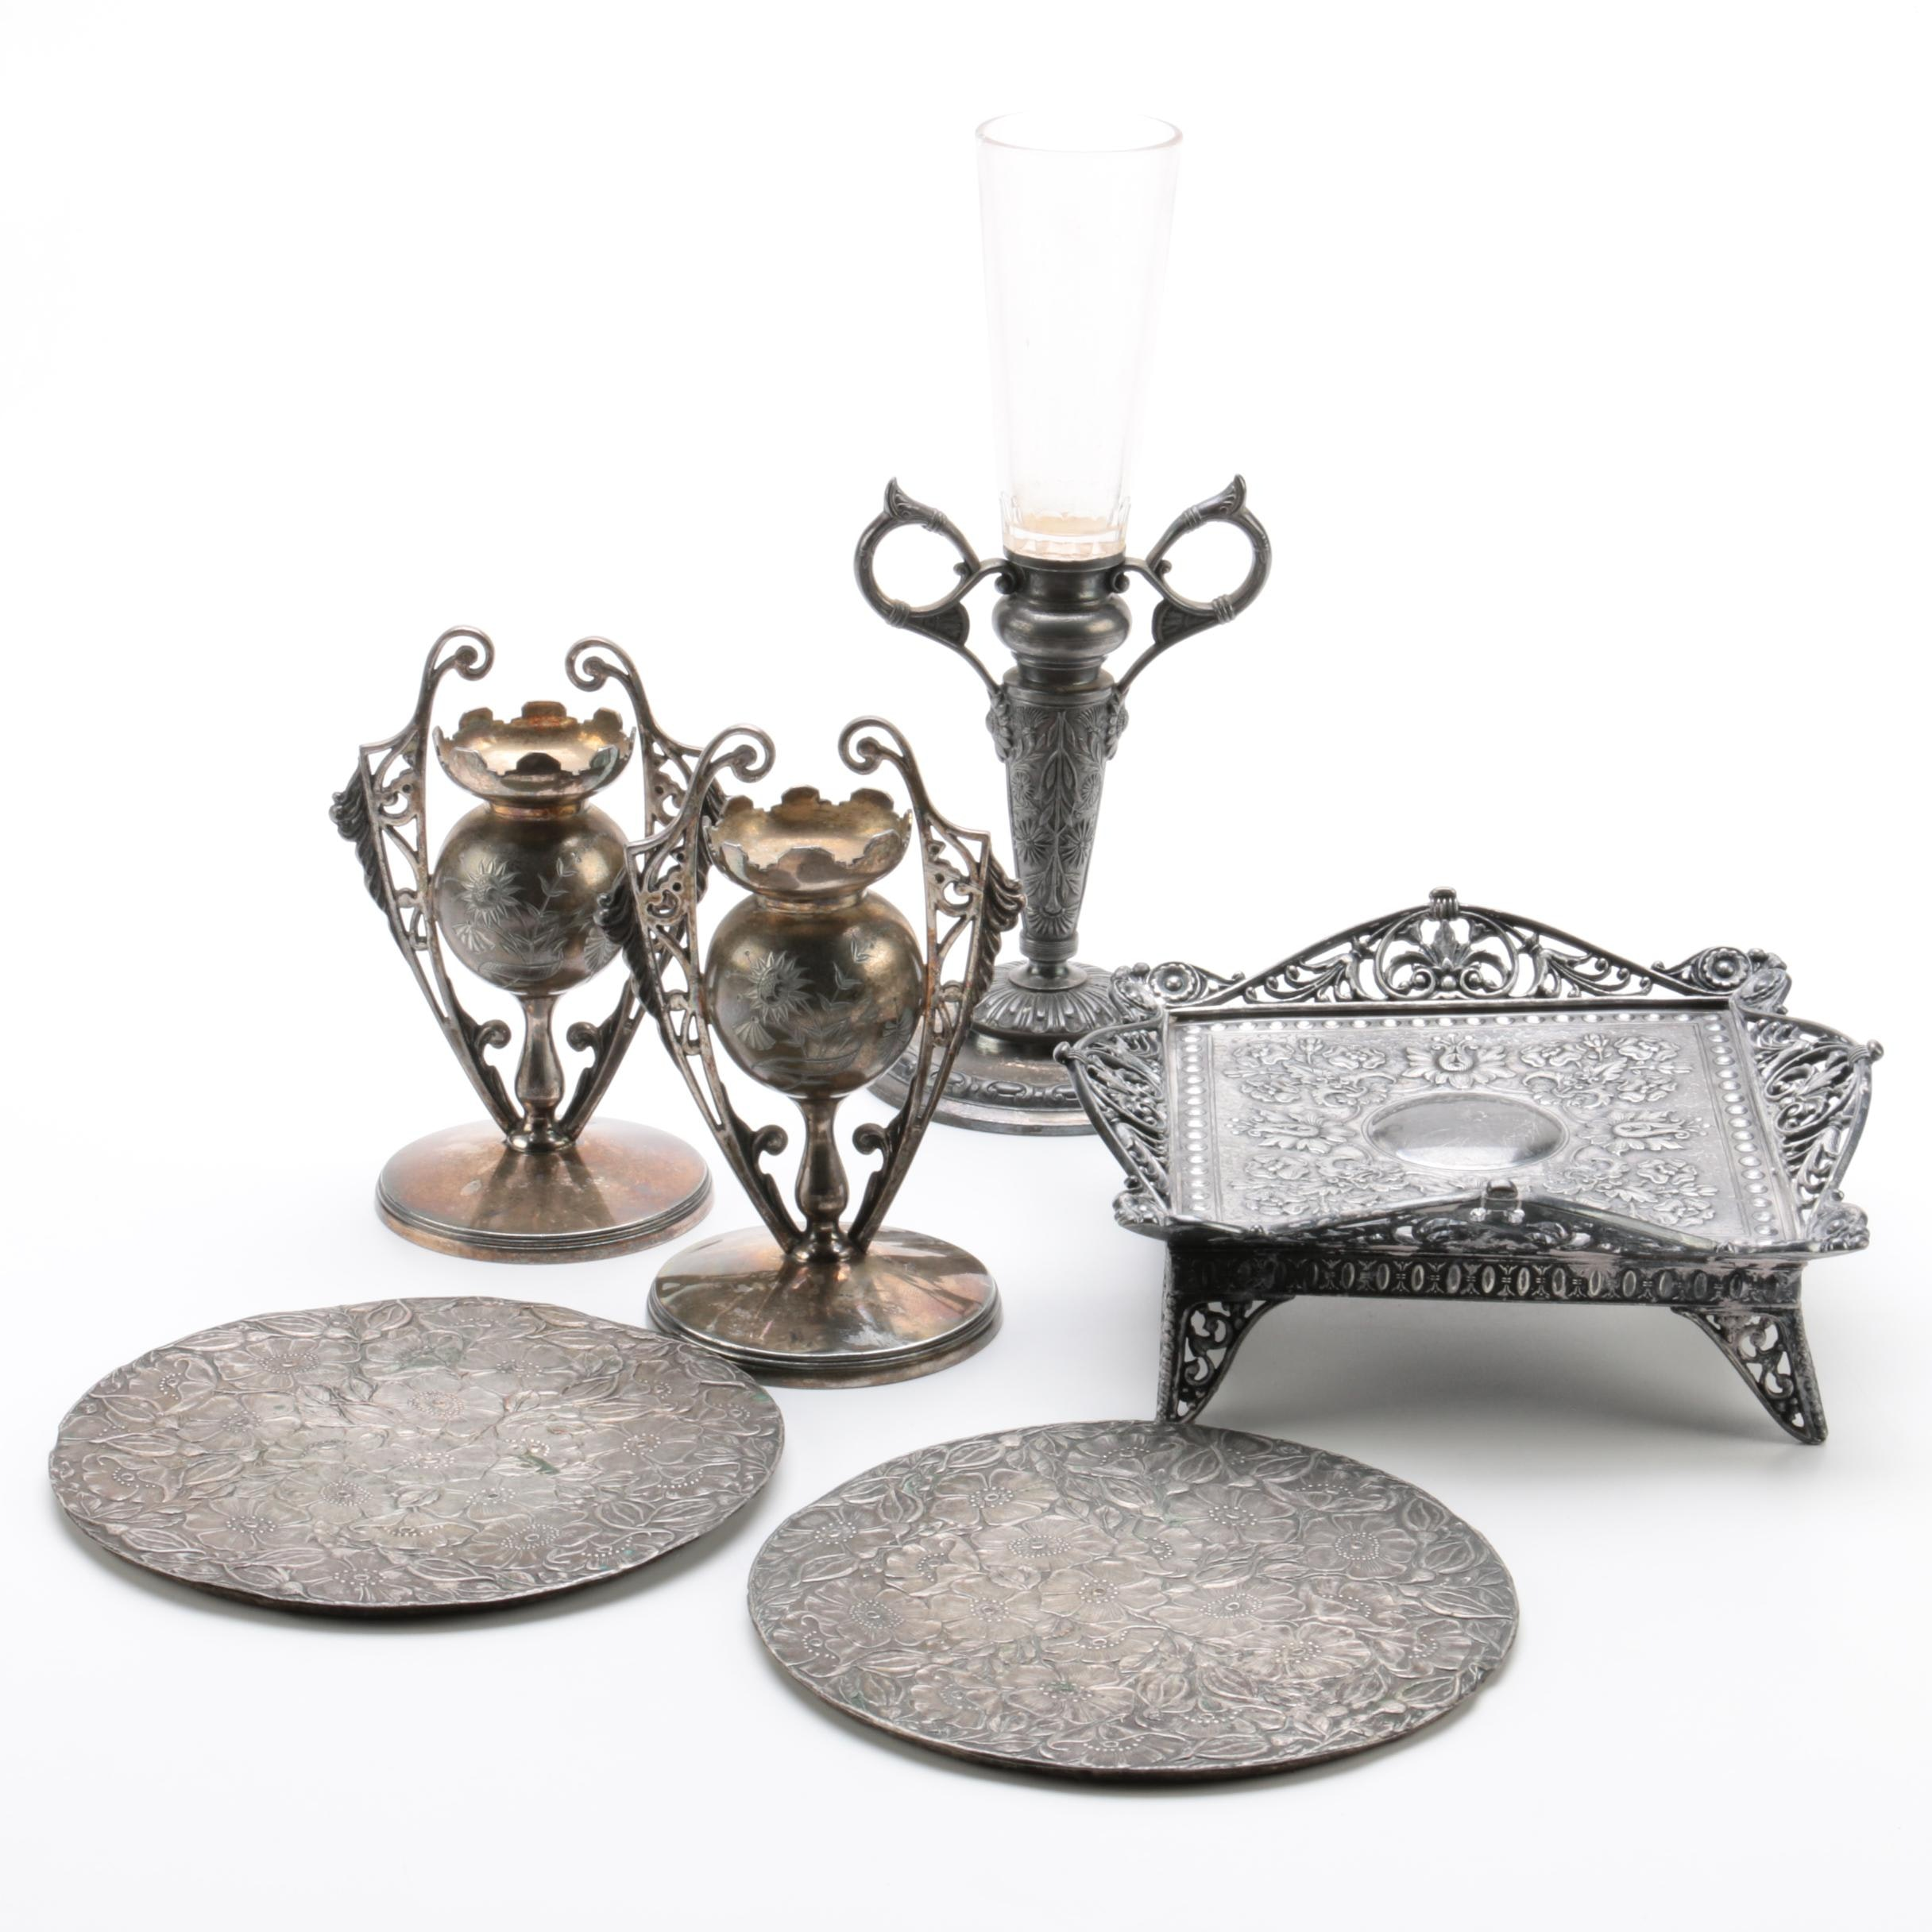 Wilcox Silver Company Silver Plate Candle Holders and Other Home Decor